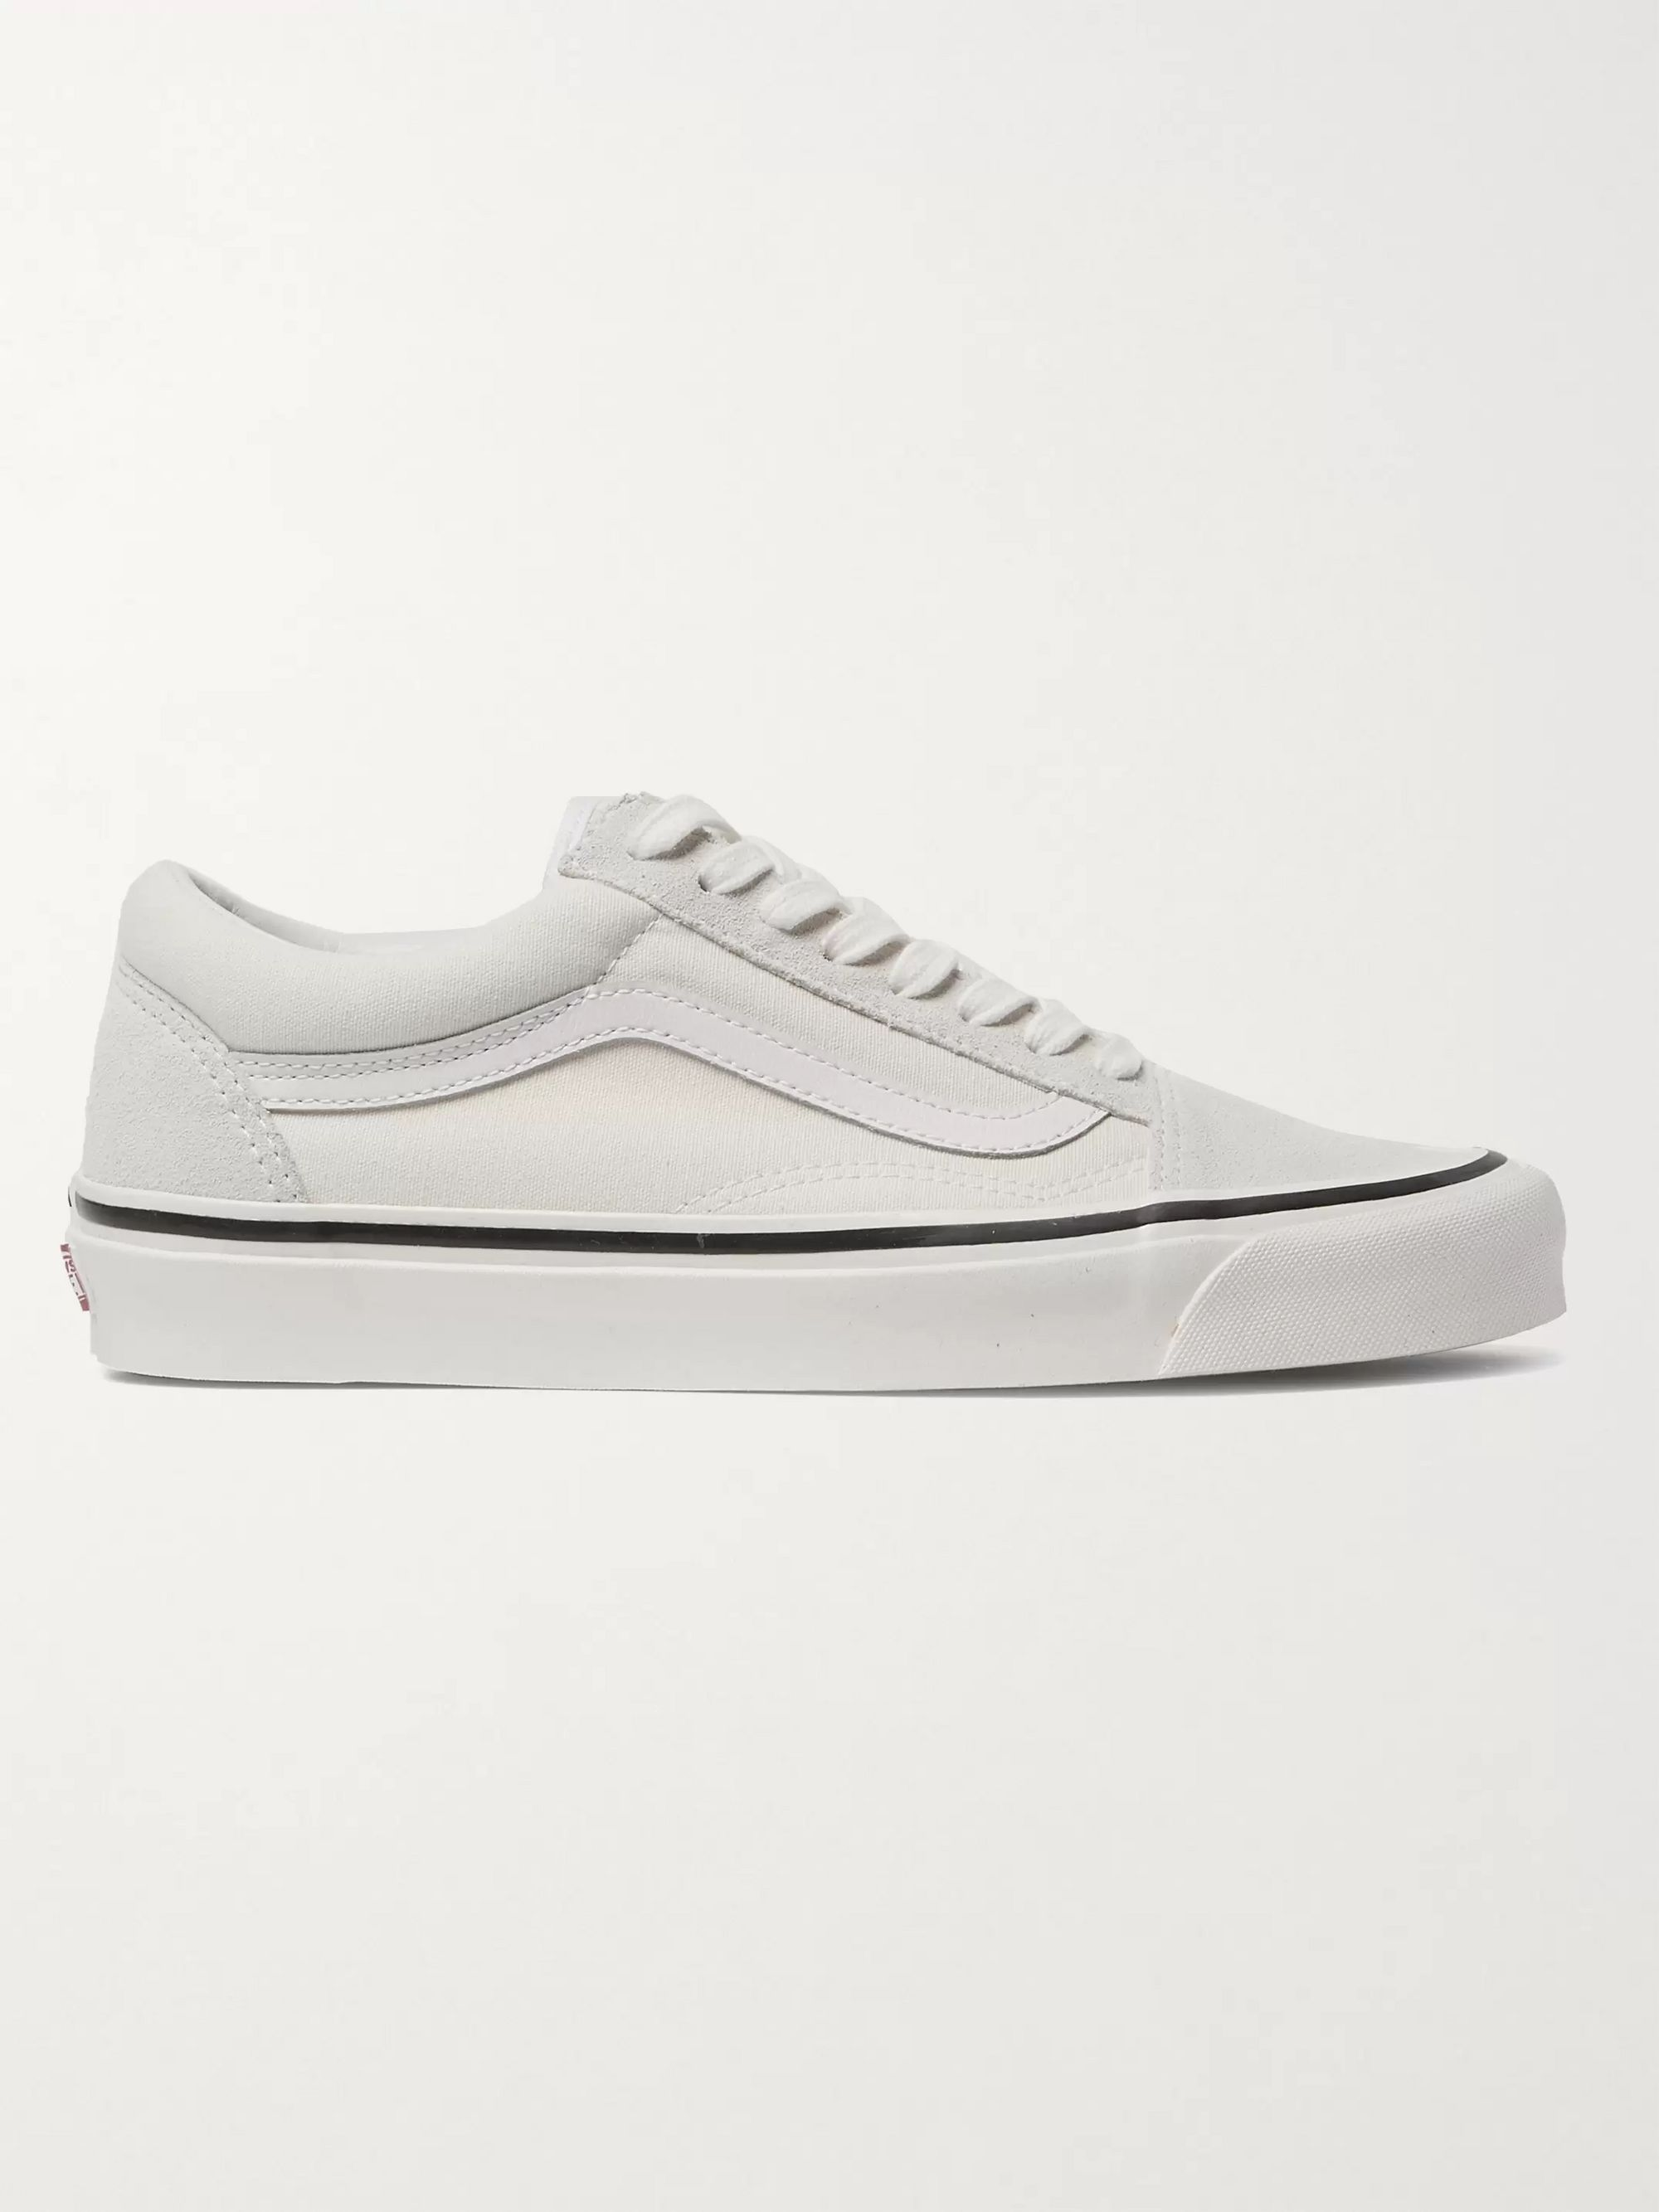 Vans UA Old Skool 36 DX Leather-Trimmed Suede and Canvas Sneakers